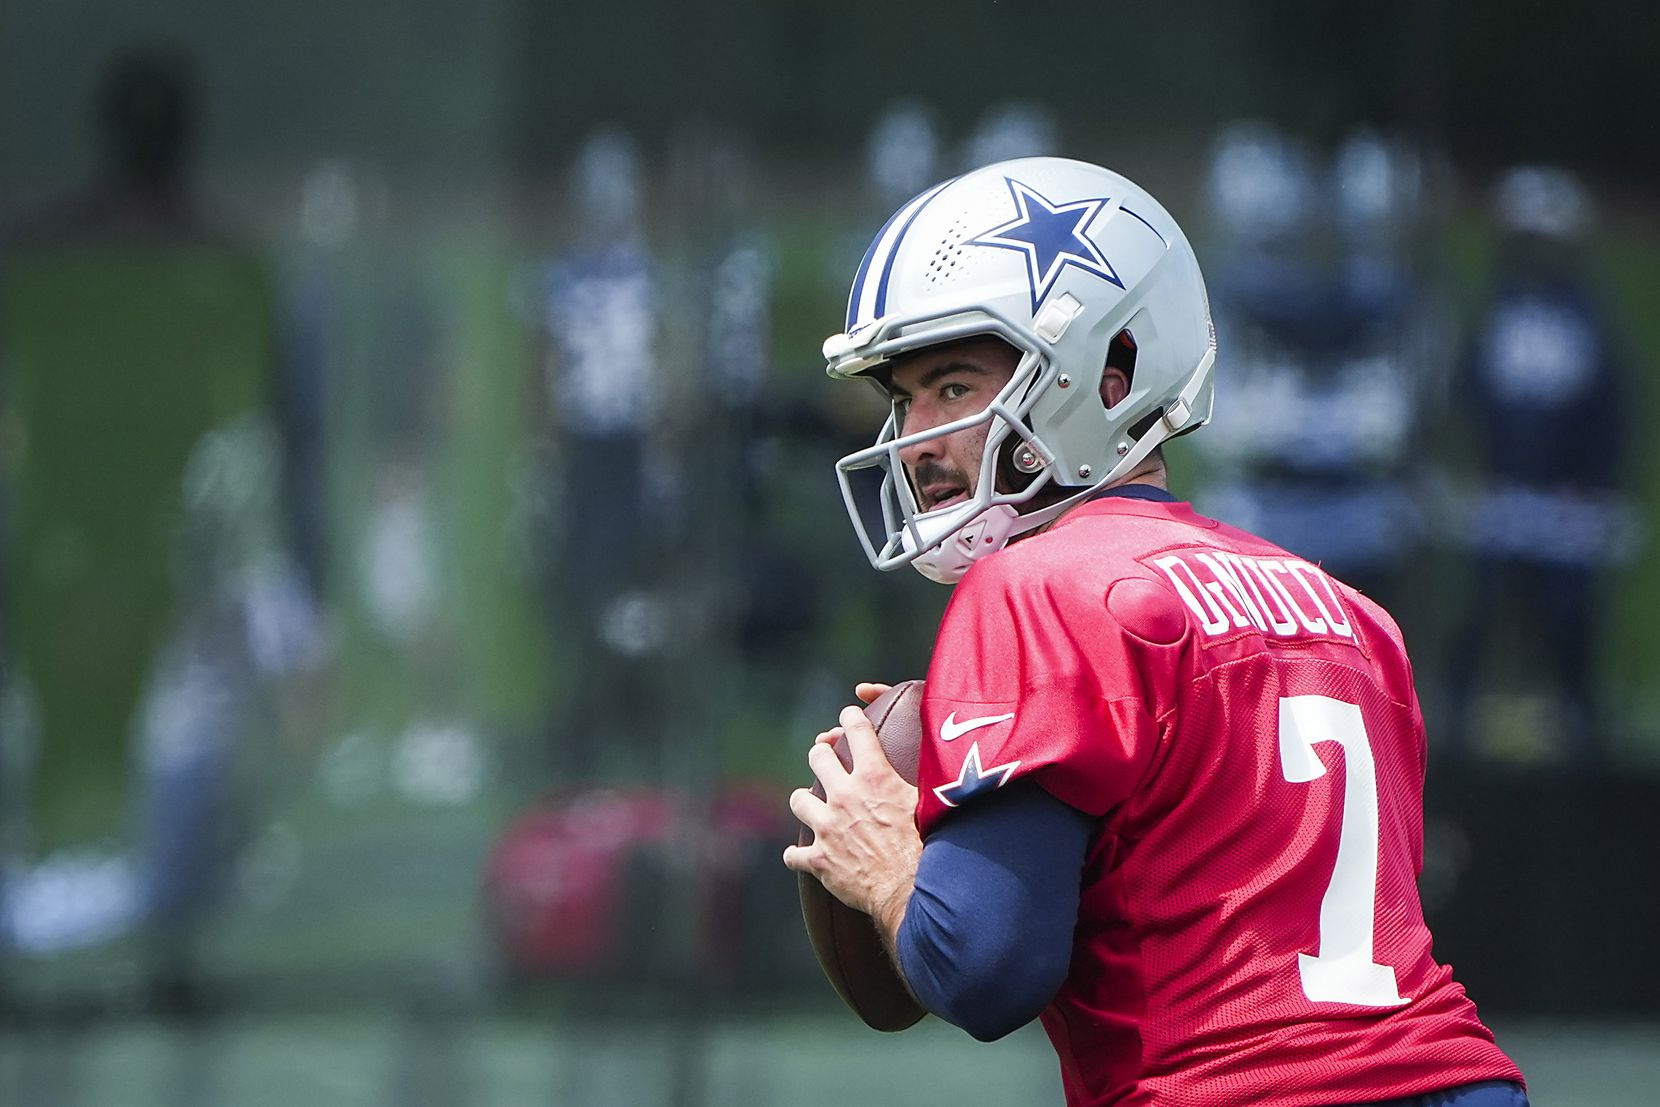 Dallas Cowboys quarterback Ben DiNucci runs a drill during a minicamp practice at The Star on Tuesday, June 8, 2021, in Frisco. (Smiley N. Pool/The Dallas Morning News)